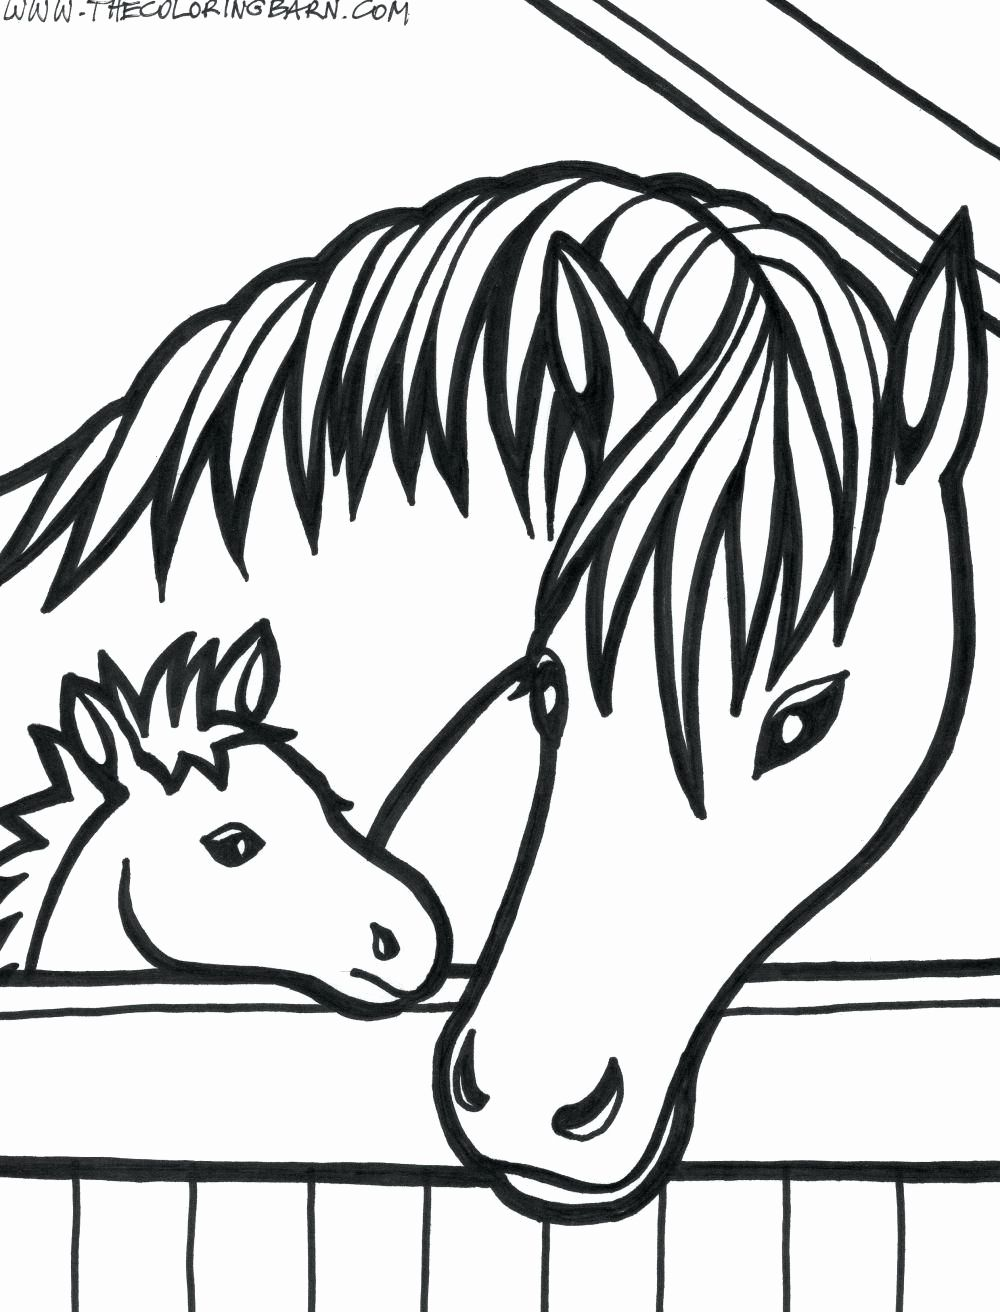 Baby Horse Coloring Pages For Kids Horse Coloring Pages Unicorn Coloring Pages Coloring Pages For Girls